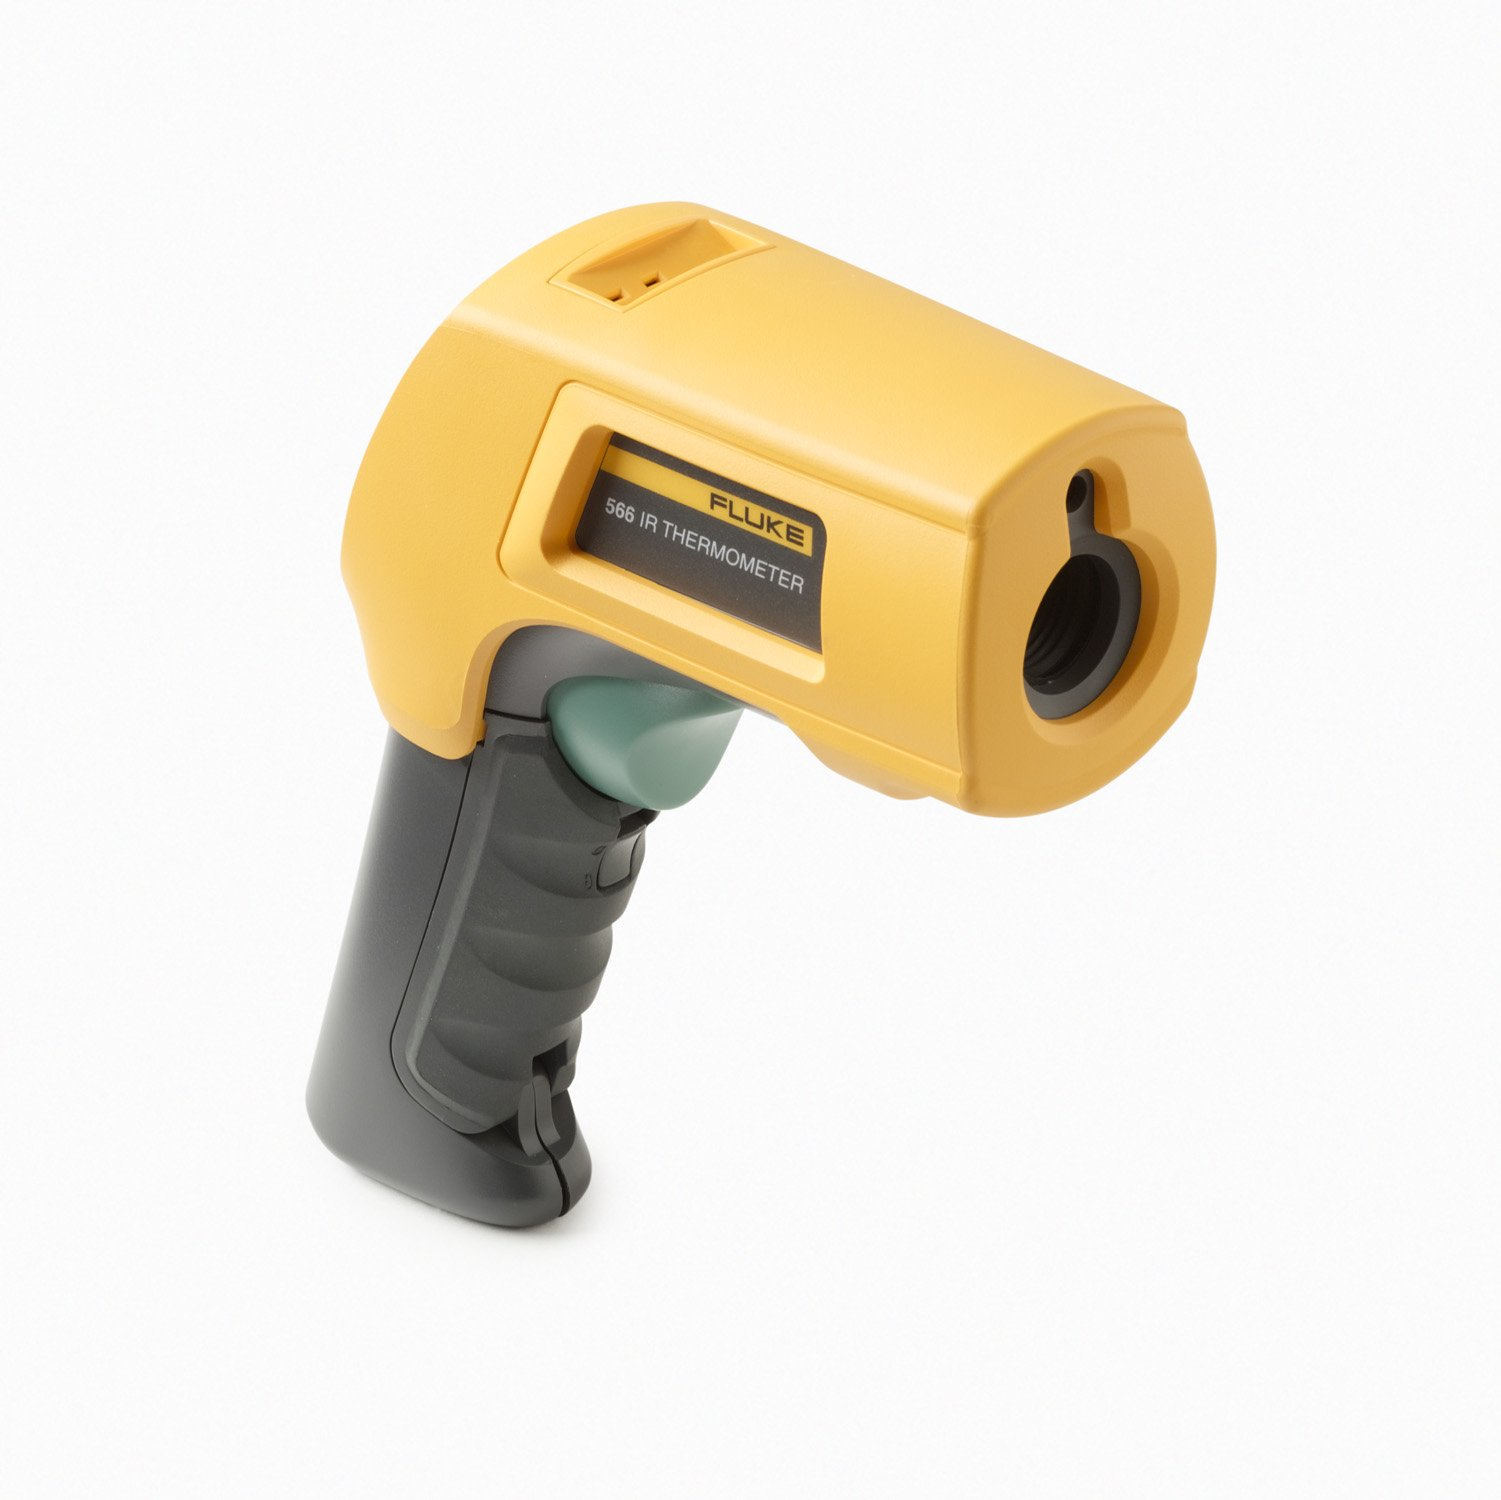 Fluke 566  Dual Infrared Thermometer, -40 to +1202 Degree F Range, Contact/Non Contact by Fluke (Image #4)